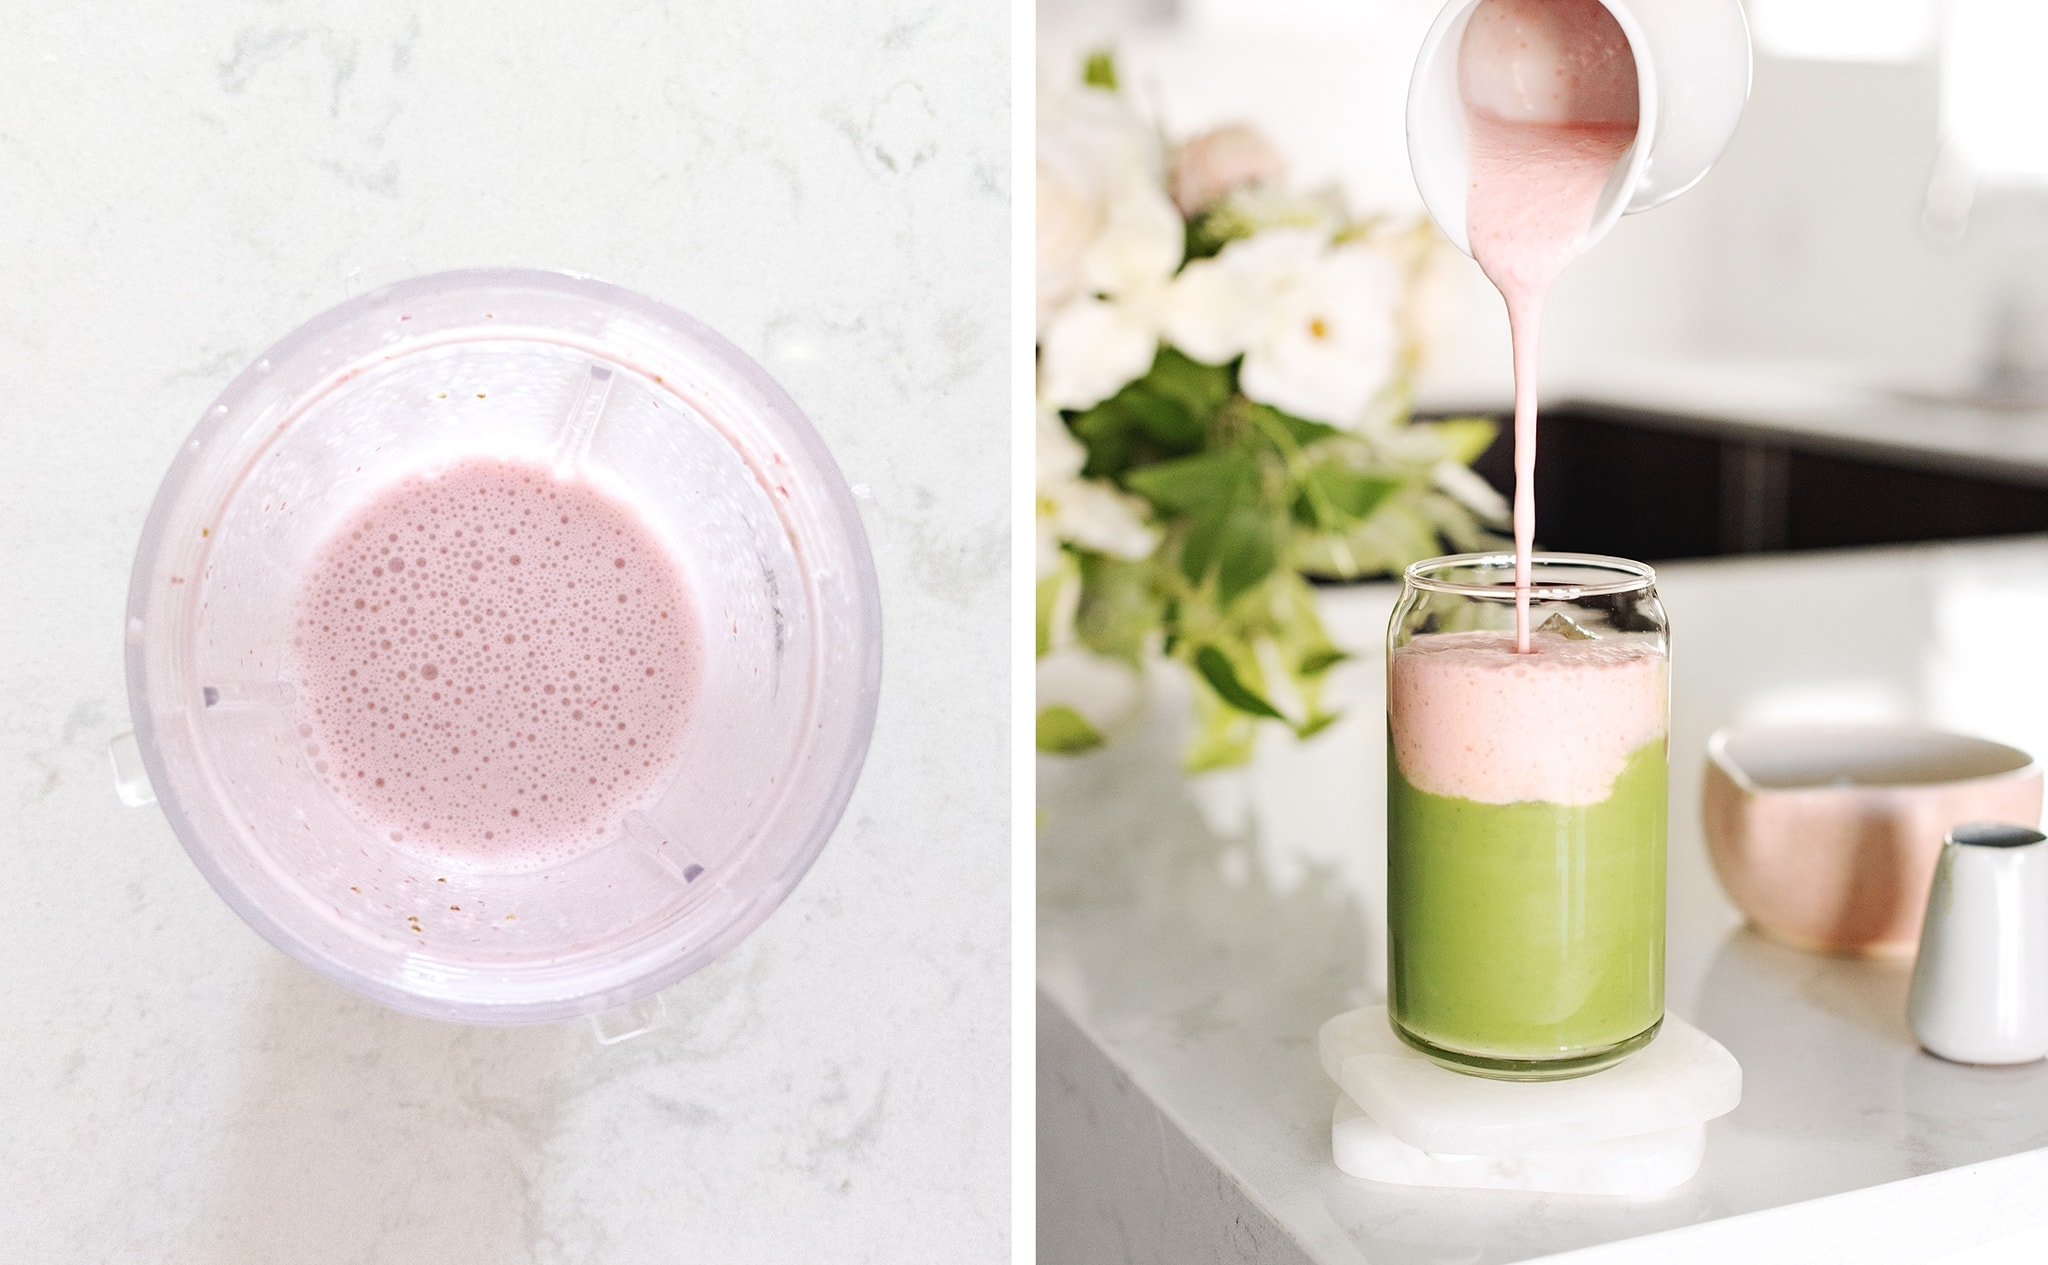 Pouring strawberry sweet cream on top of matcha latte